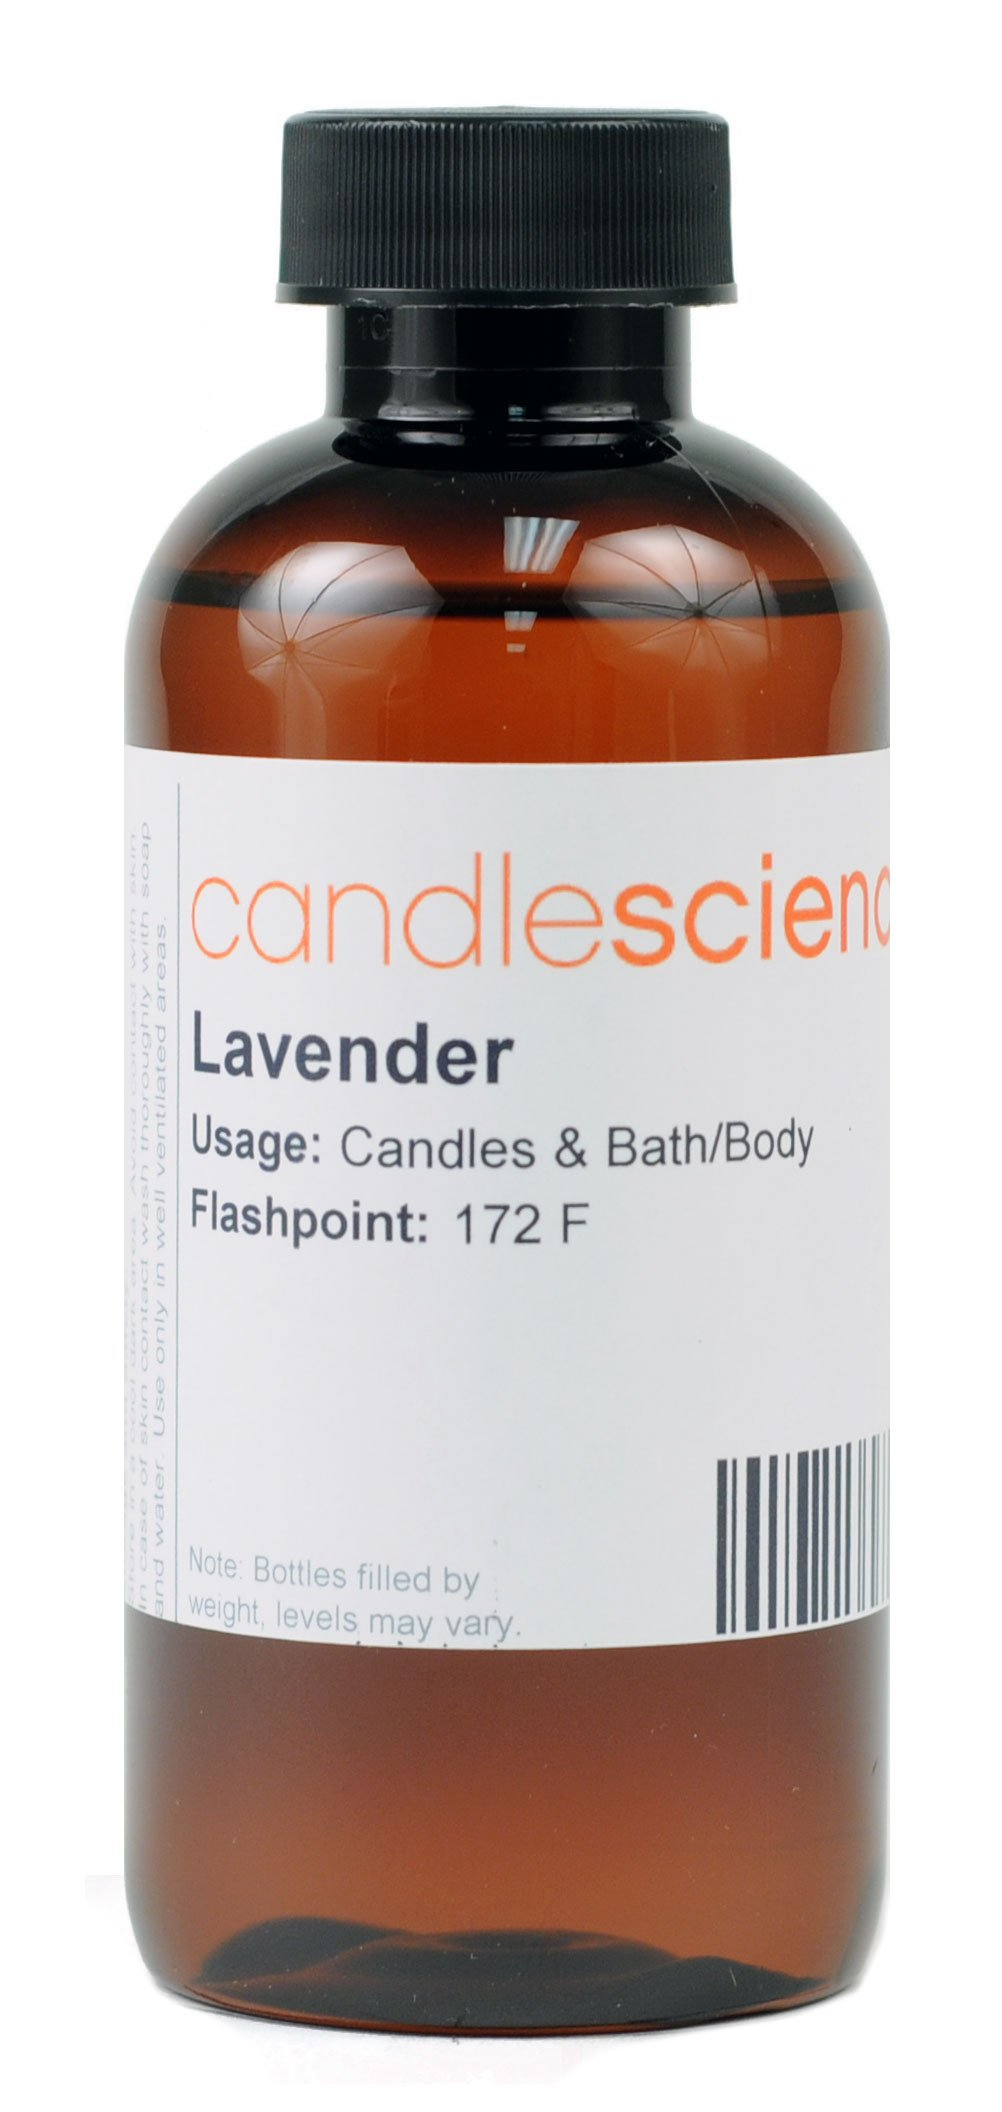 CandleScience Candle Scent Lavender, 4 oz.